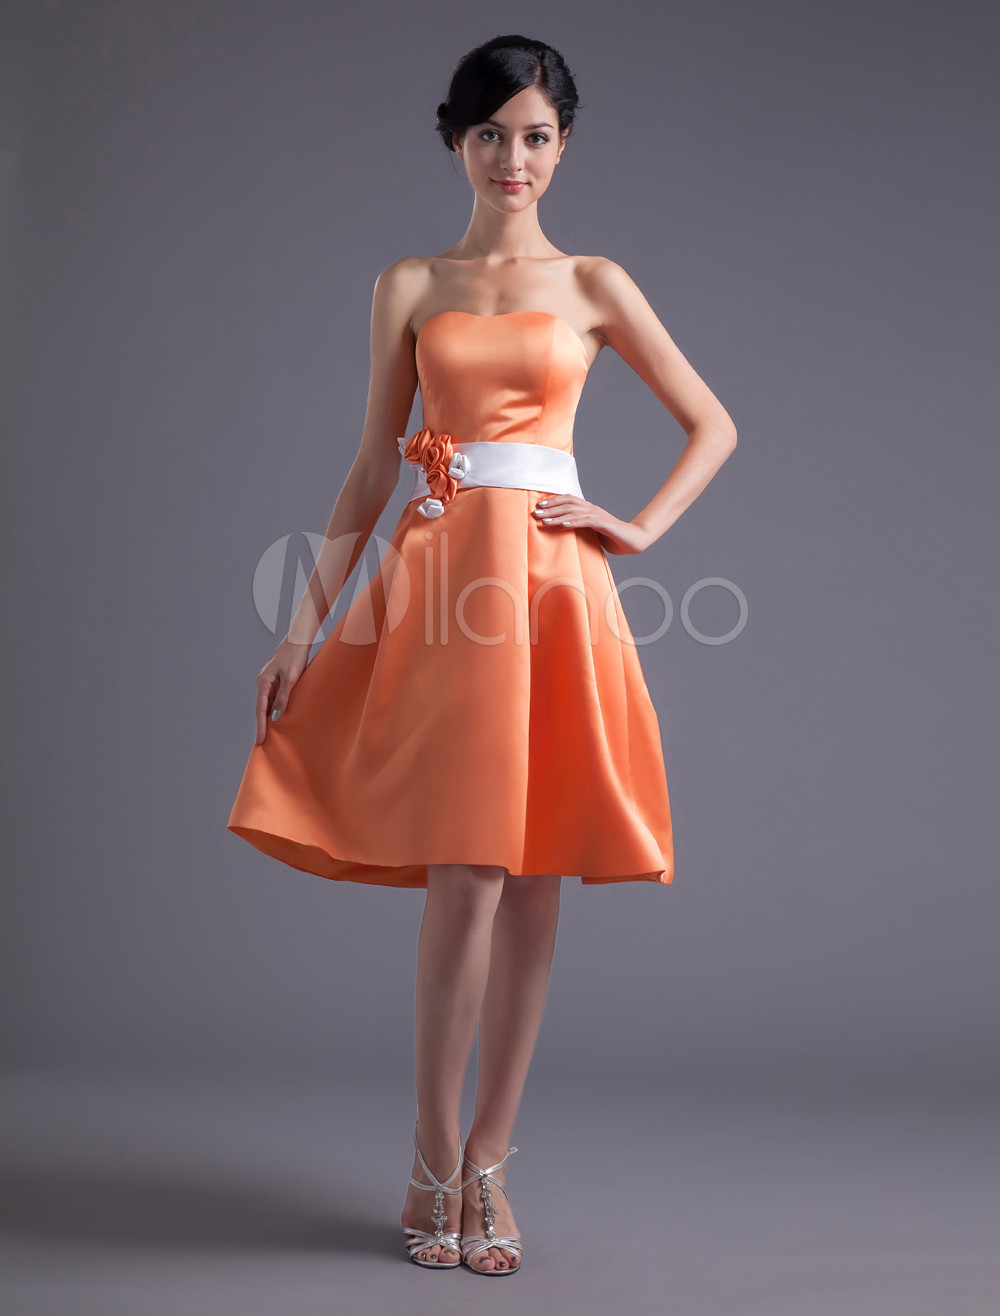 A-line Orange Satin Floral Strapless Bridesmaid Dress For Wedding